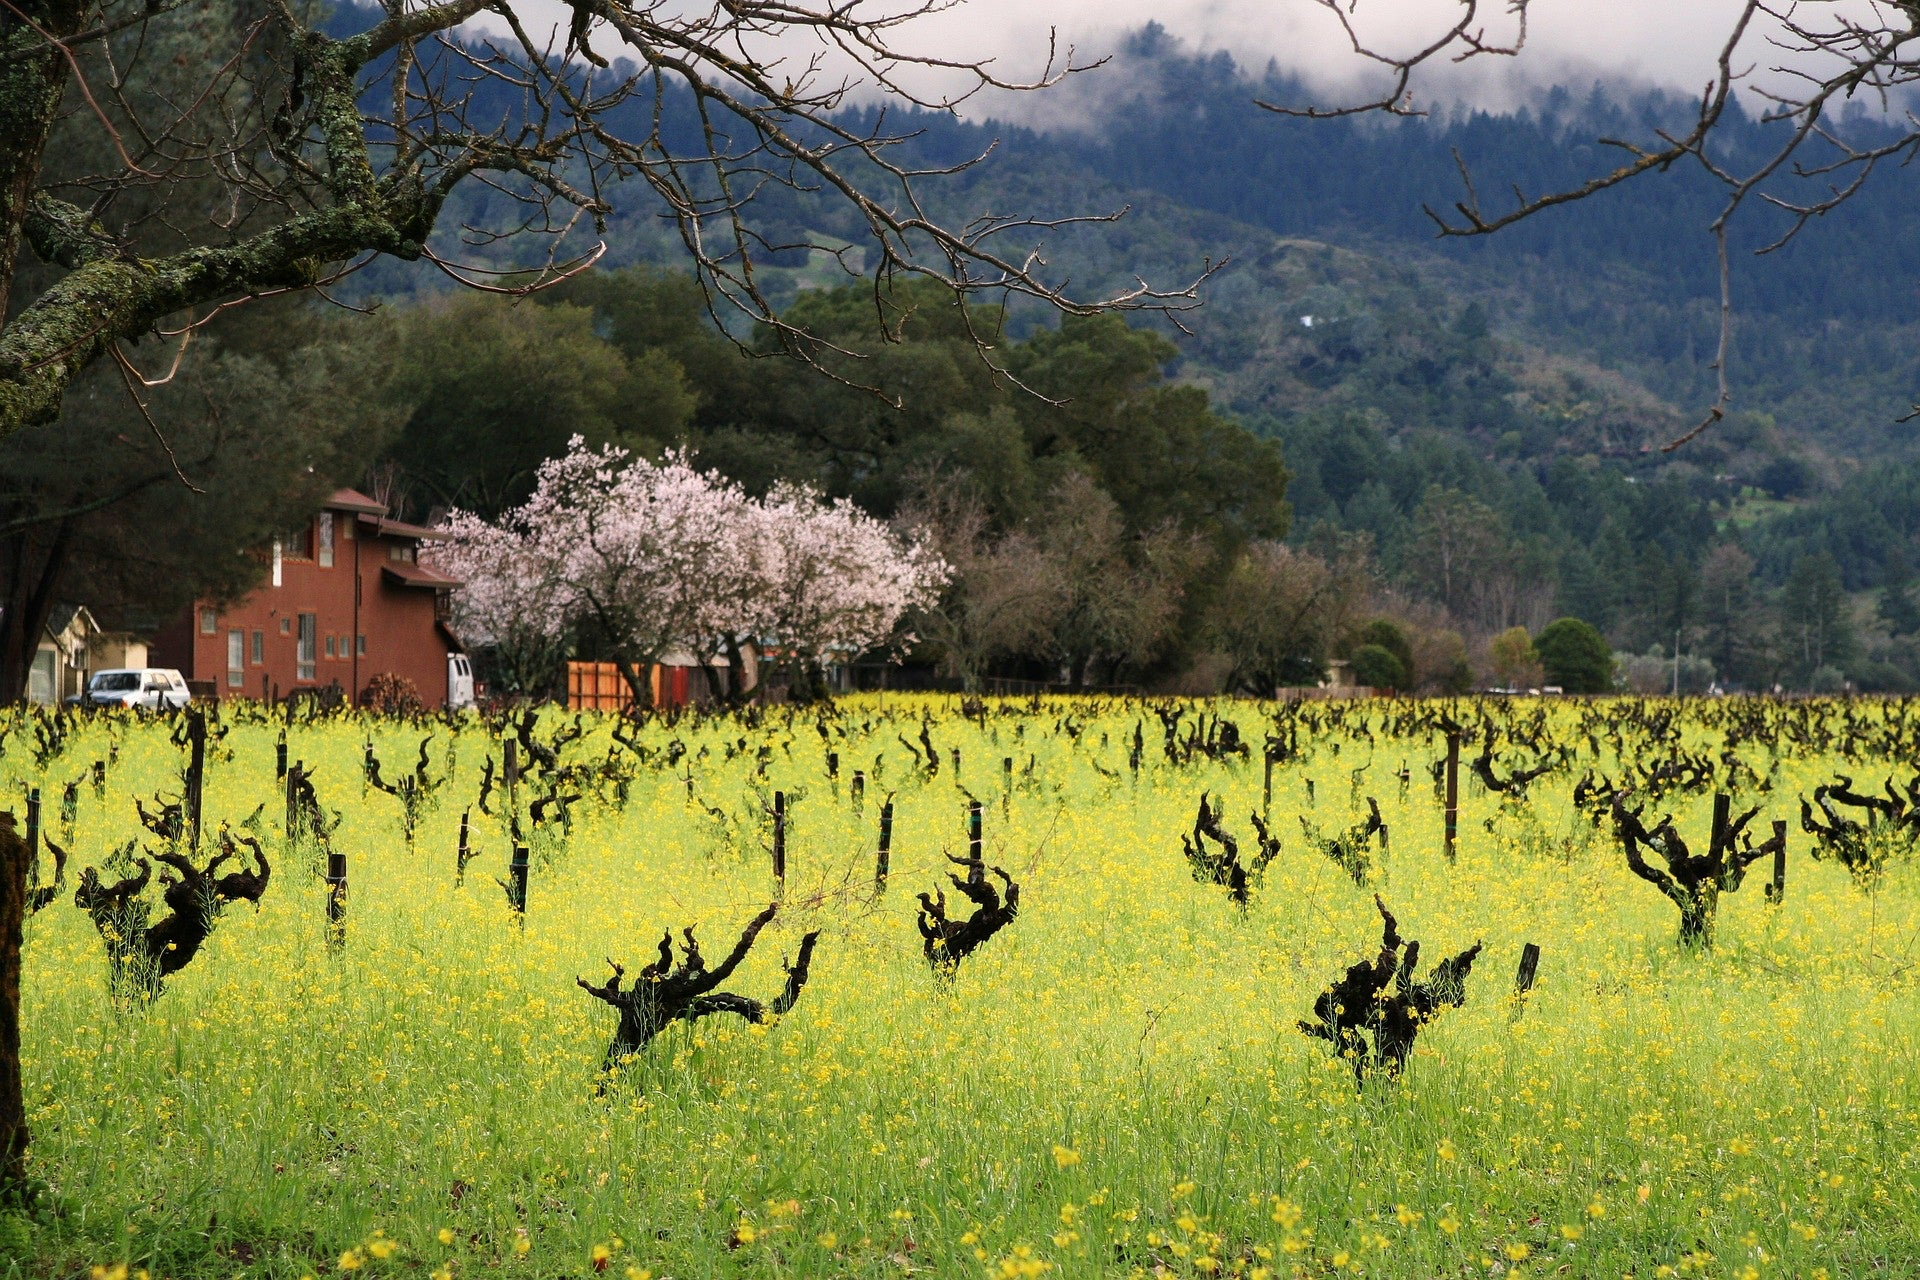 Winter in Wine Country:  It Cuts the Mustard